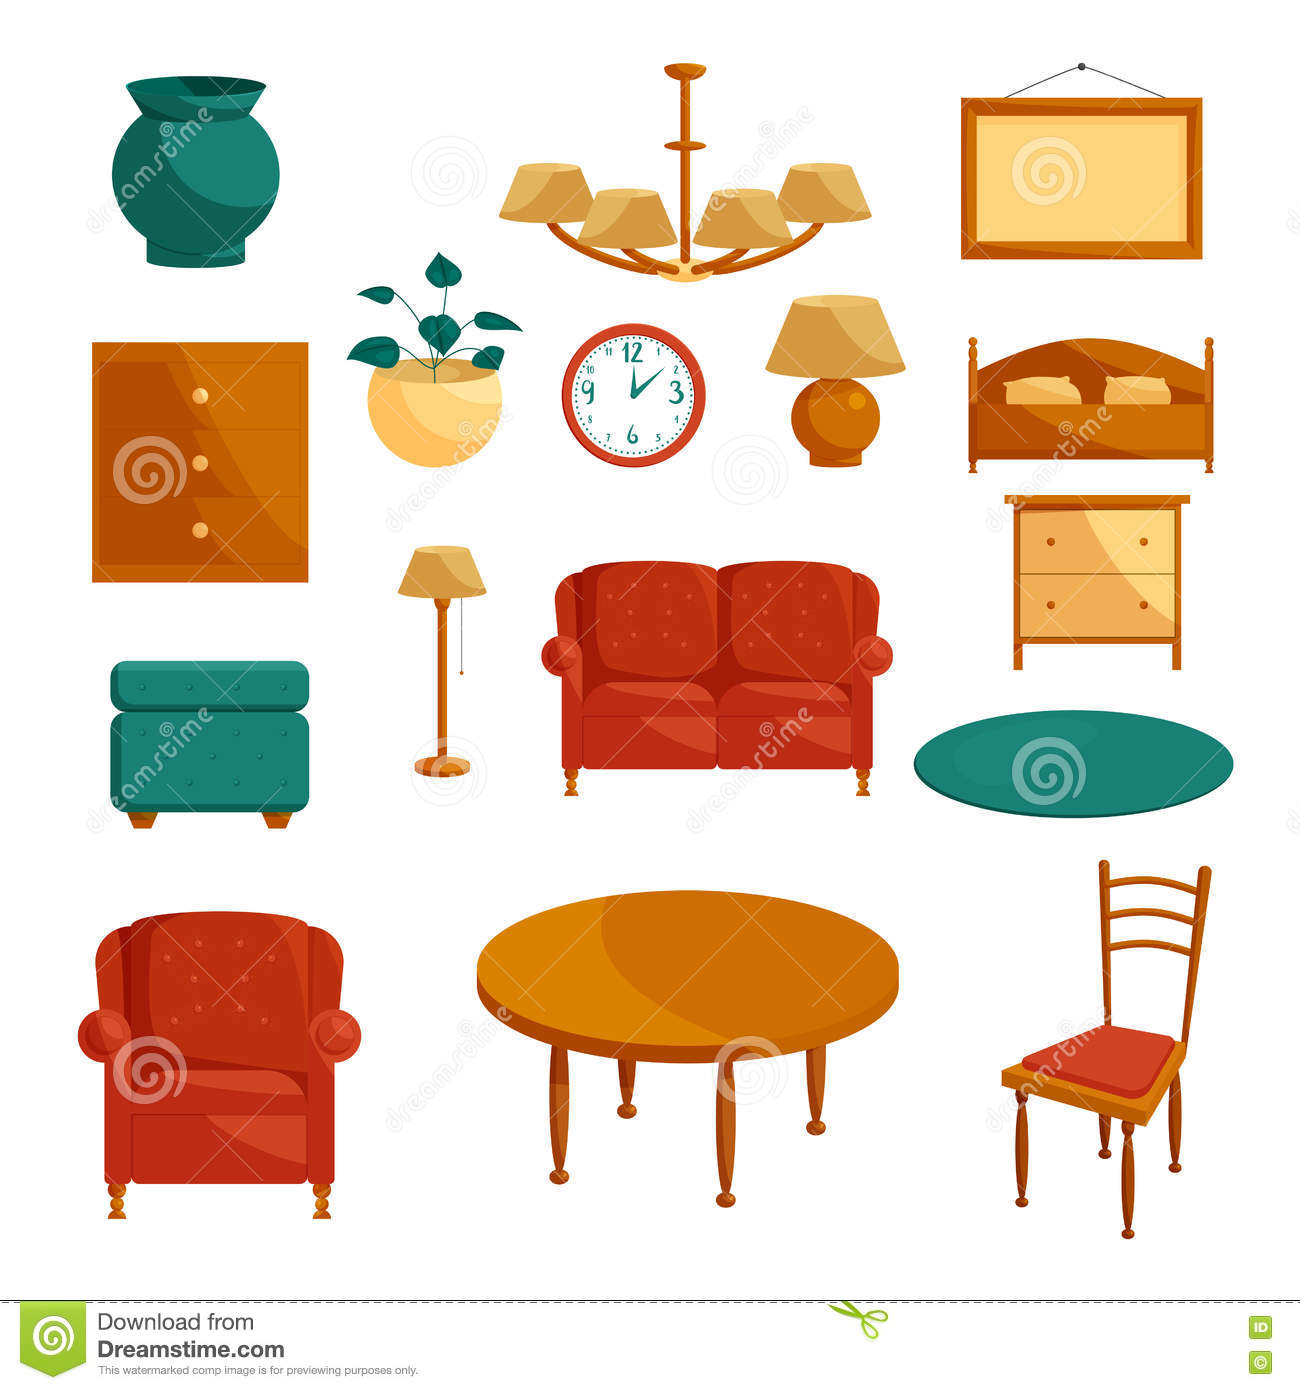 Cartoon Kitchen Furniture: Furniture Icons Set, Cartoon Style Stock Vector